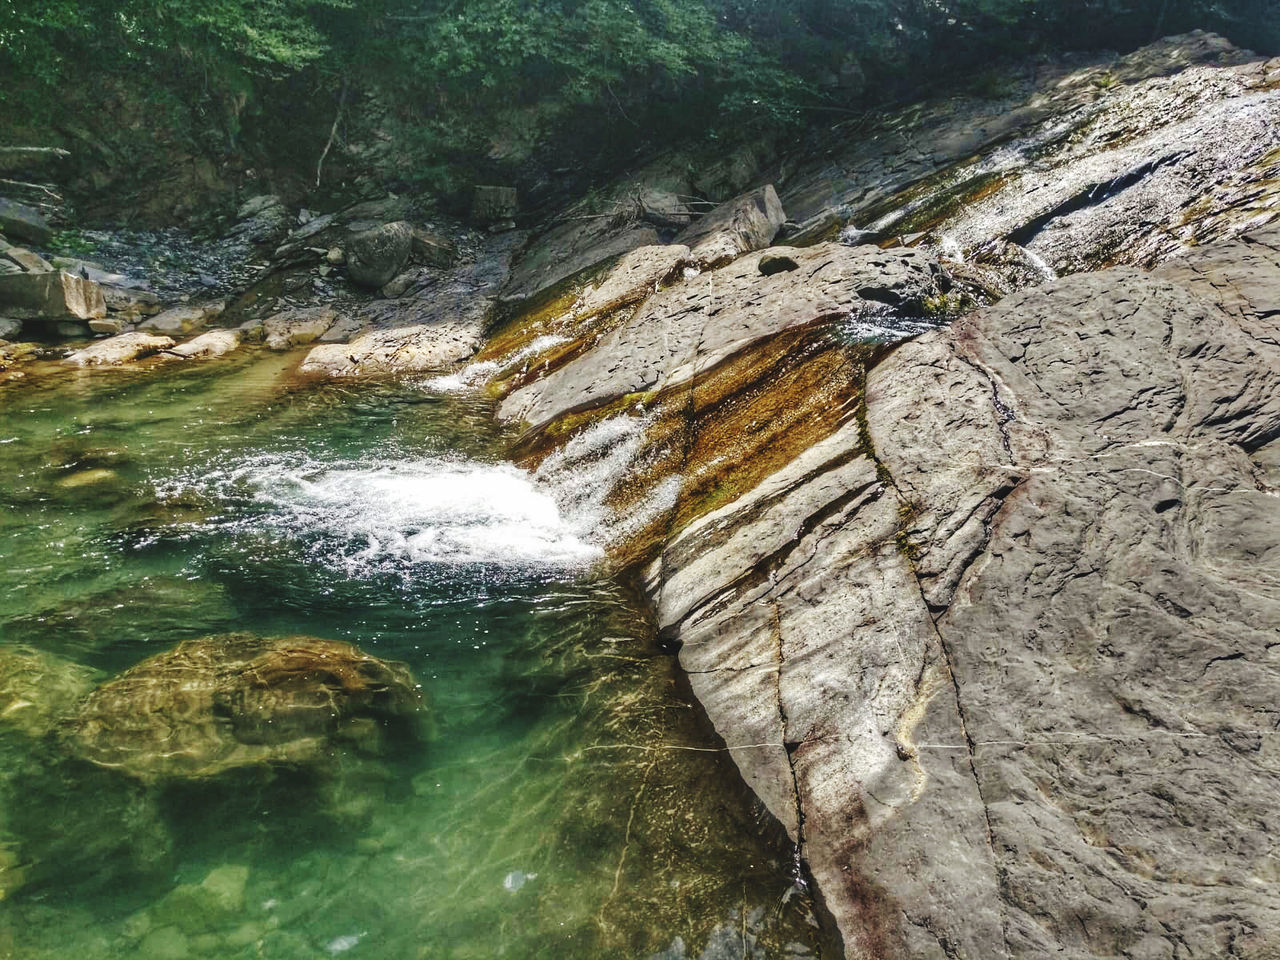 rock, rock - object, beauty in nature, solid, water, nature, scenics - nature, no people, rock formation, day, tree, motion, waterfall, tranquility, land, flowing water, non-urban scene, forest, plant, outdoors, flowing, eroded, formation